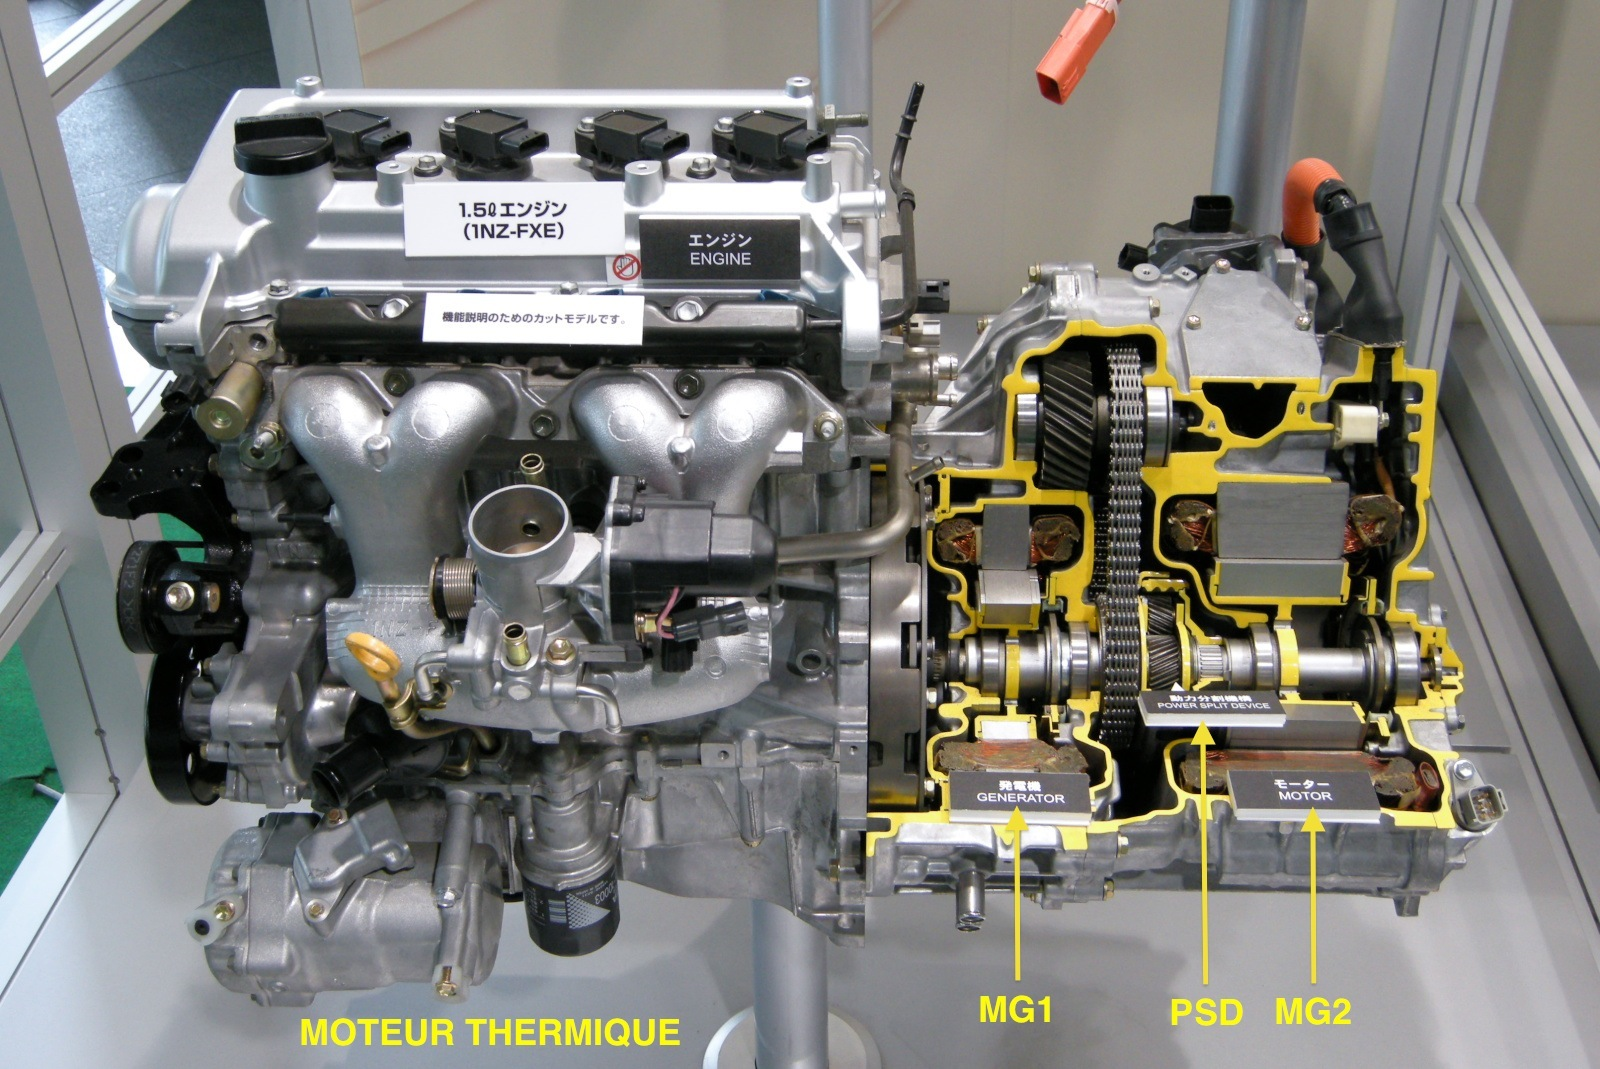 Zf 4 Hp Auto Electrical Wiring Diagram Jeep Liberty Engine Windshield Sprayer Hybride Vous Avez Dit